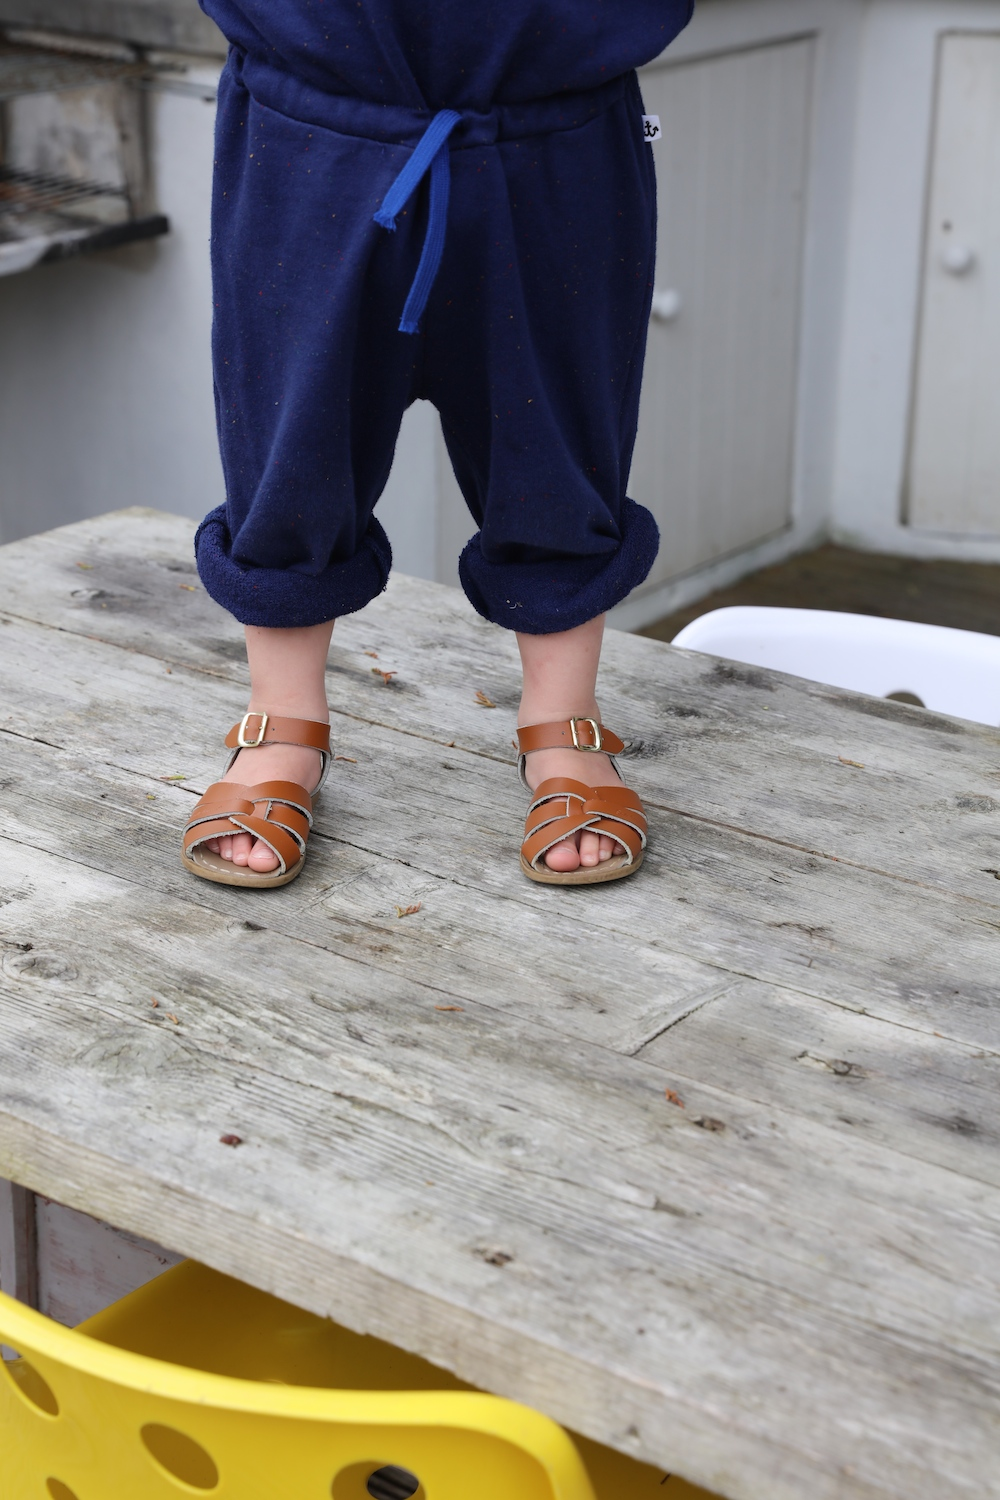 Noe_and_zoe_aw16_saltwater_sandals